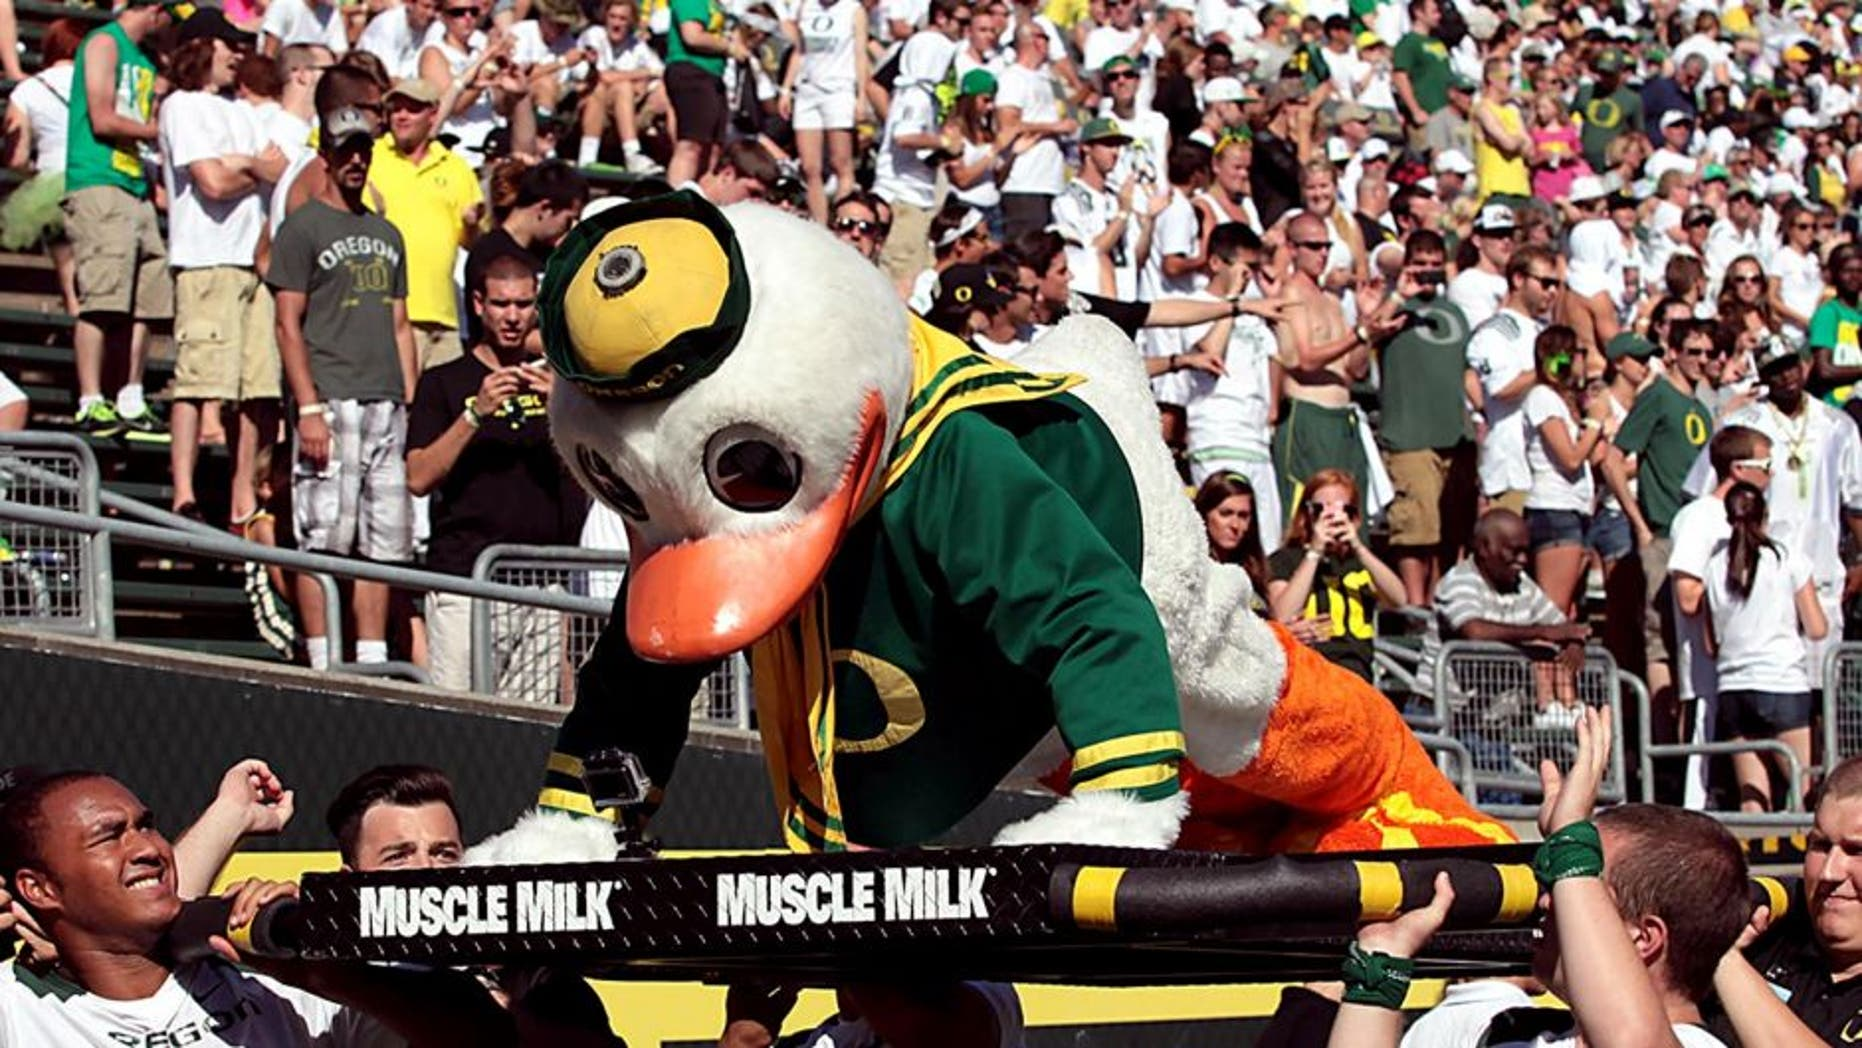 Aug 31, 2013; Eugene, OR, USA; Oregon Ducks mascot does pushups following a touchdown against the Nicholls State Colonels at Autzen Stadium. Mandatory Credit: Scott Olmos-USA TODAY Sports